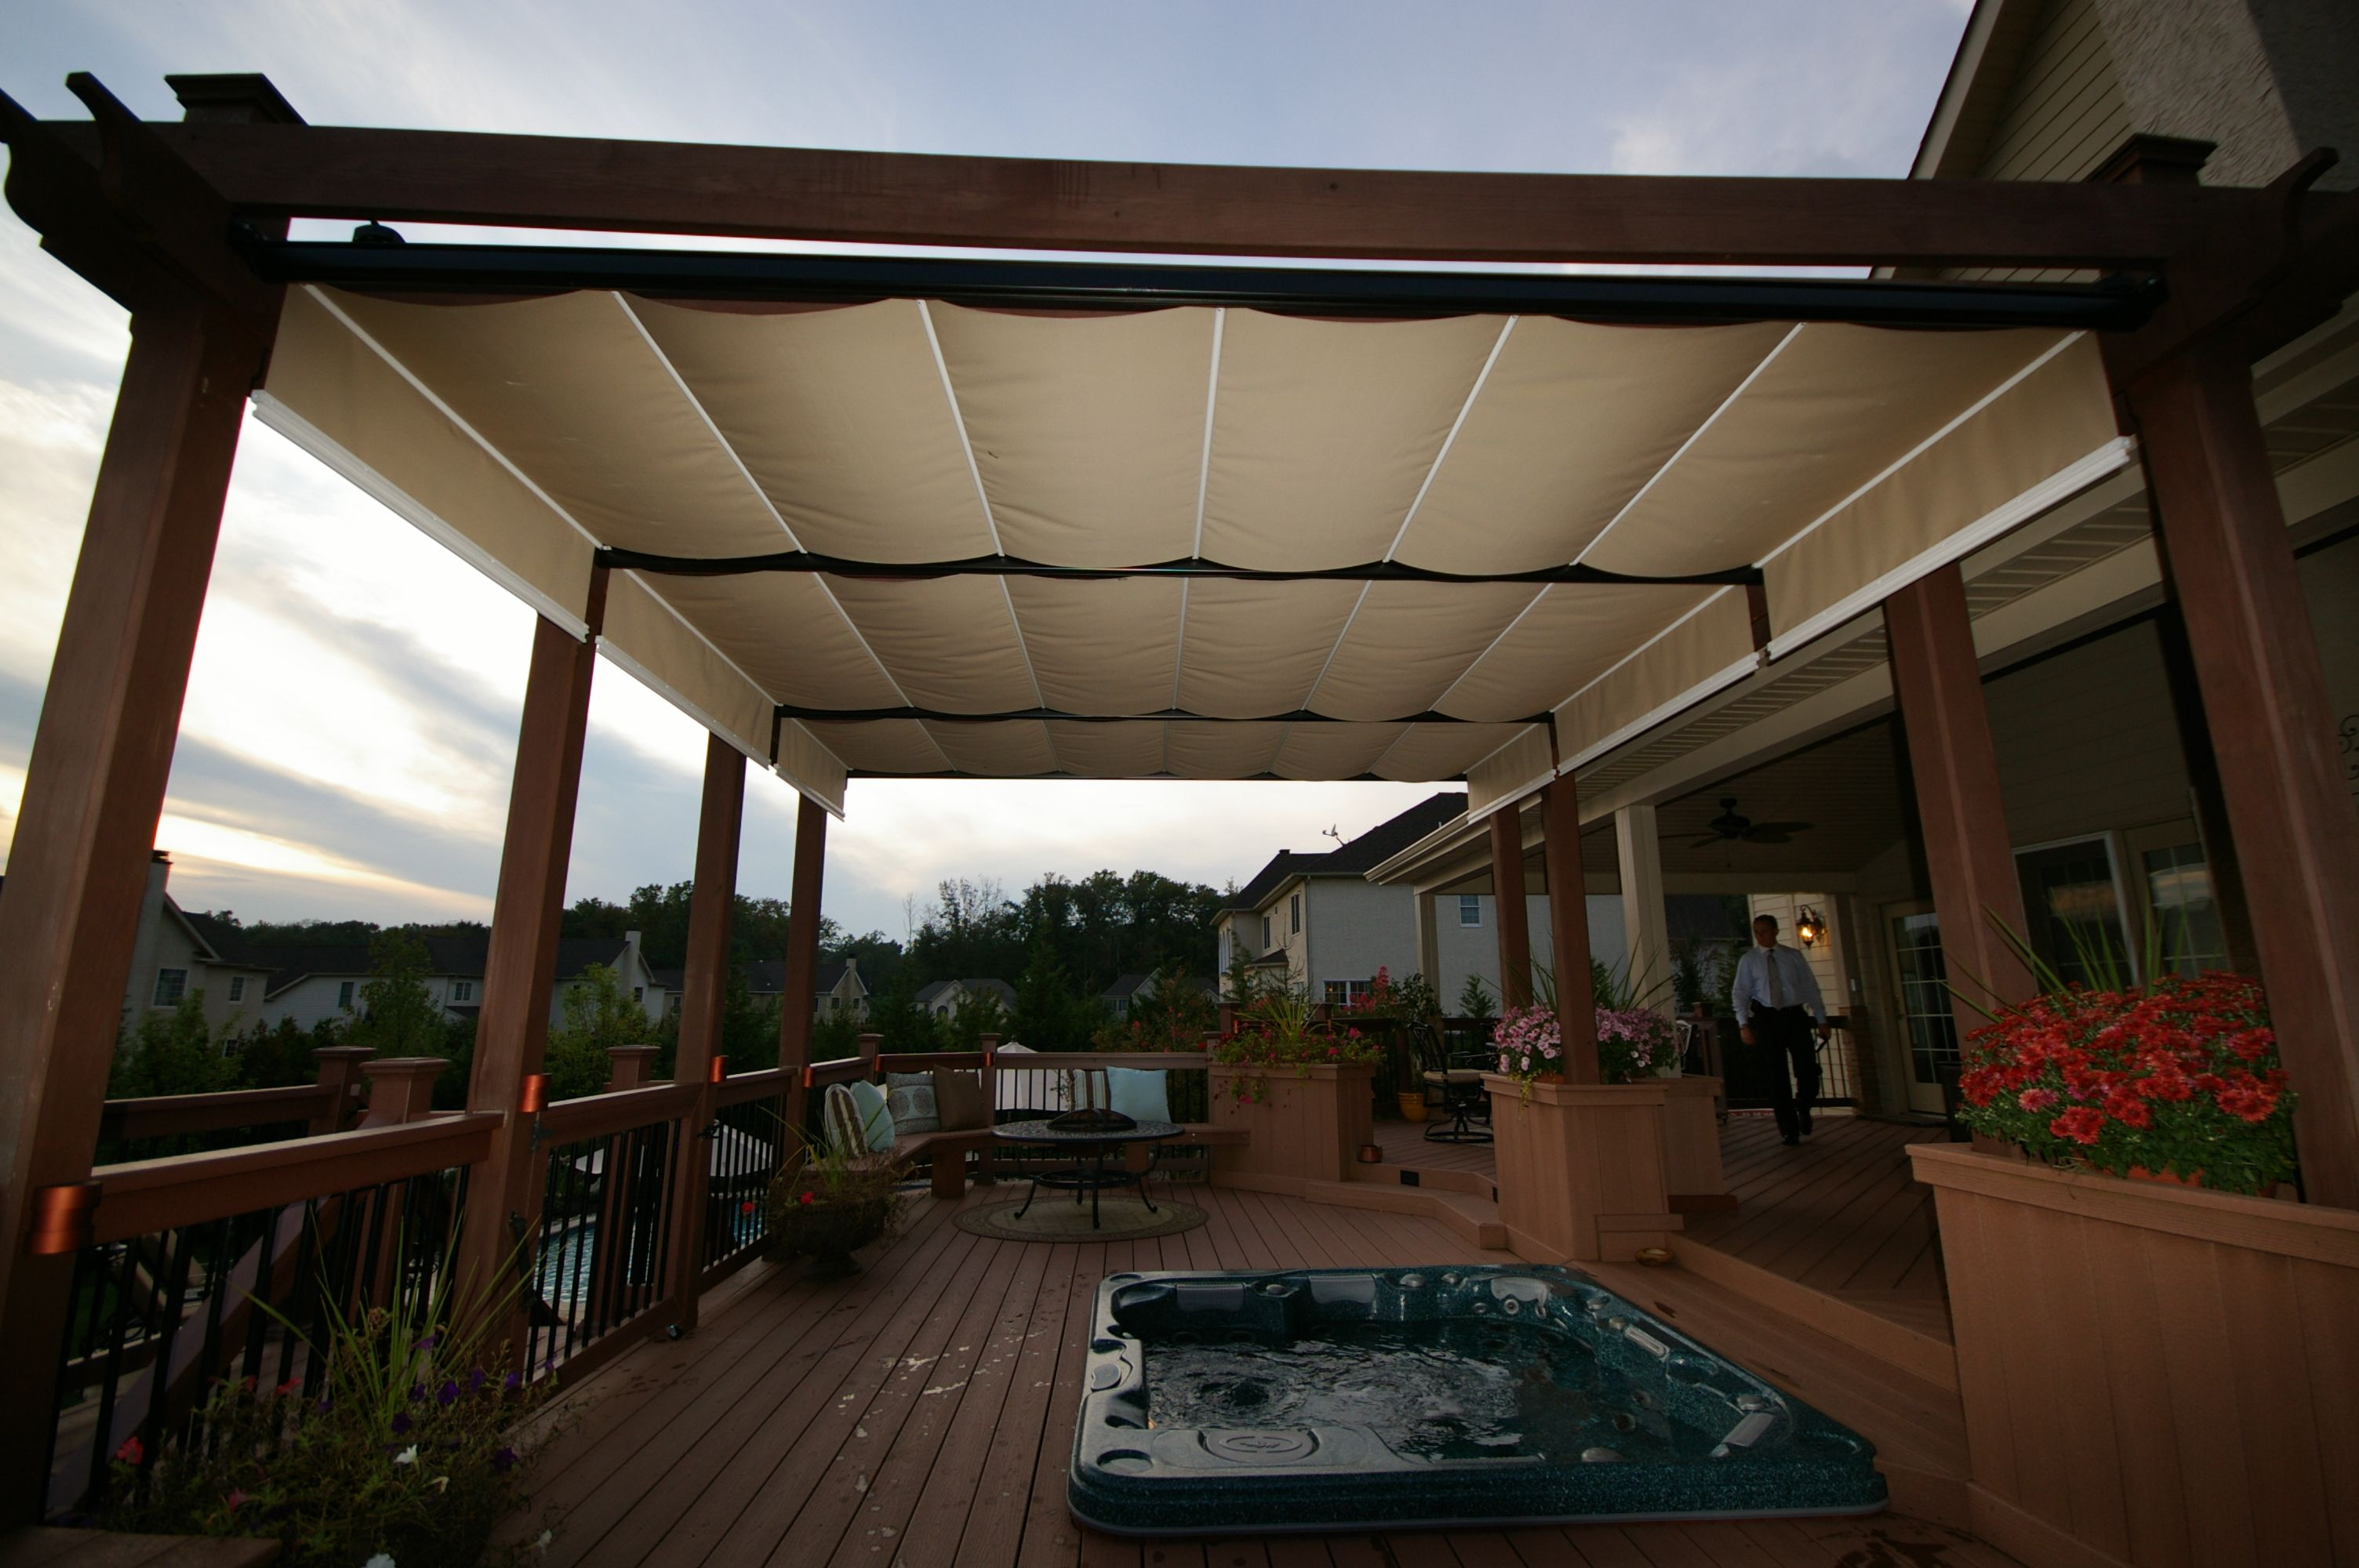 Outdoor Decks For Jacuzzis With Awning Awning Outdoor